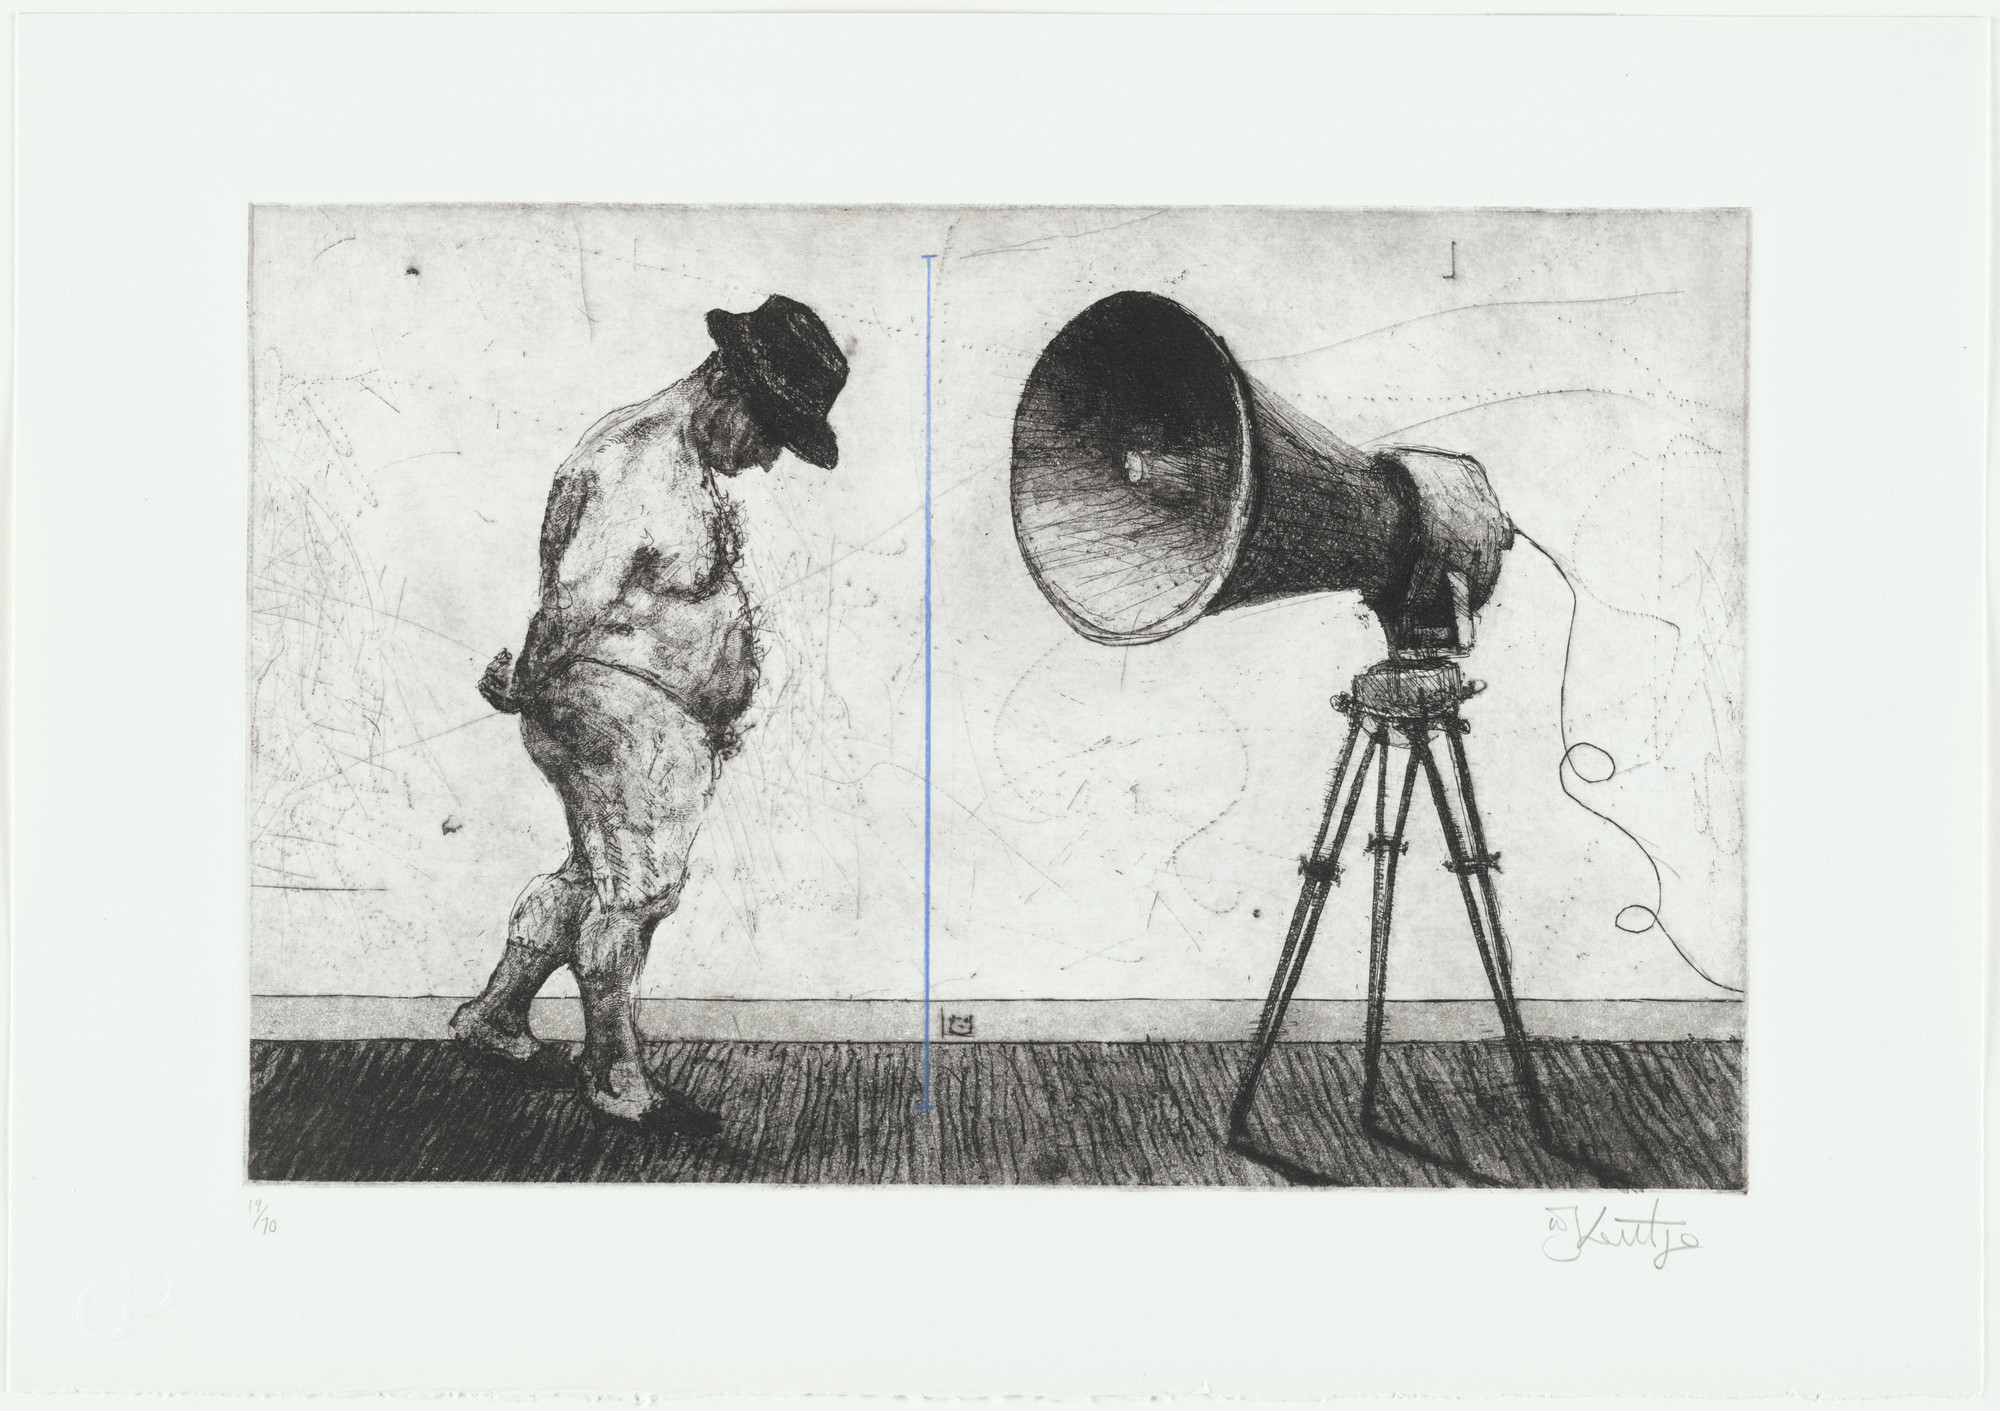 William Kentridge. Untitled (Man with Megaphone). 1998